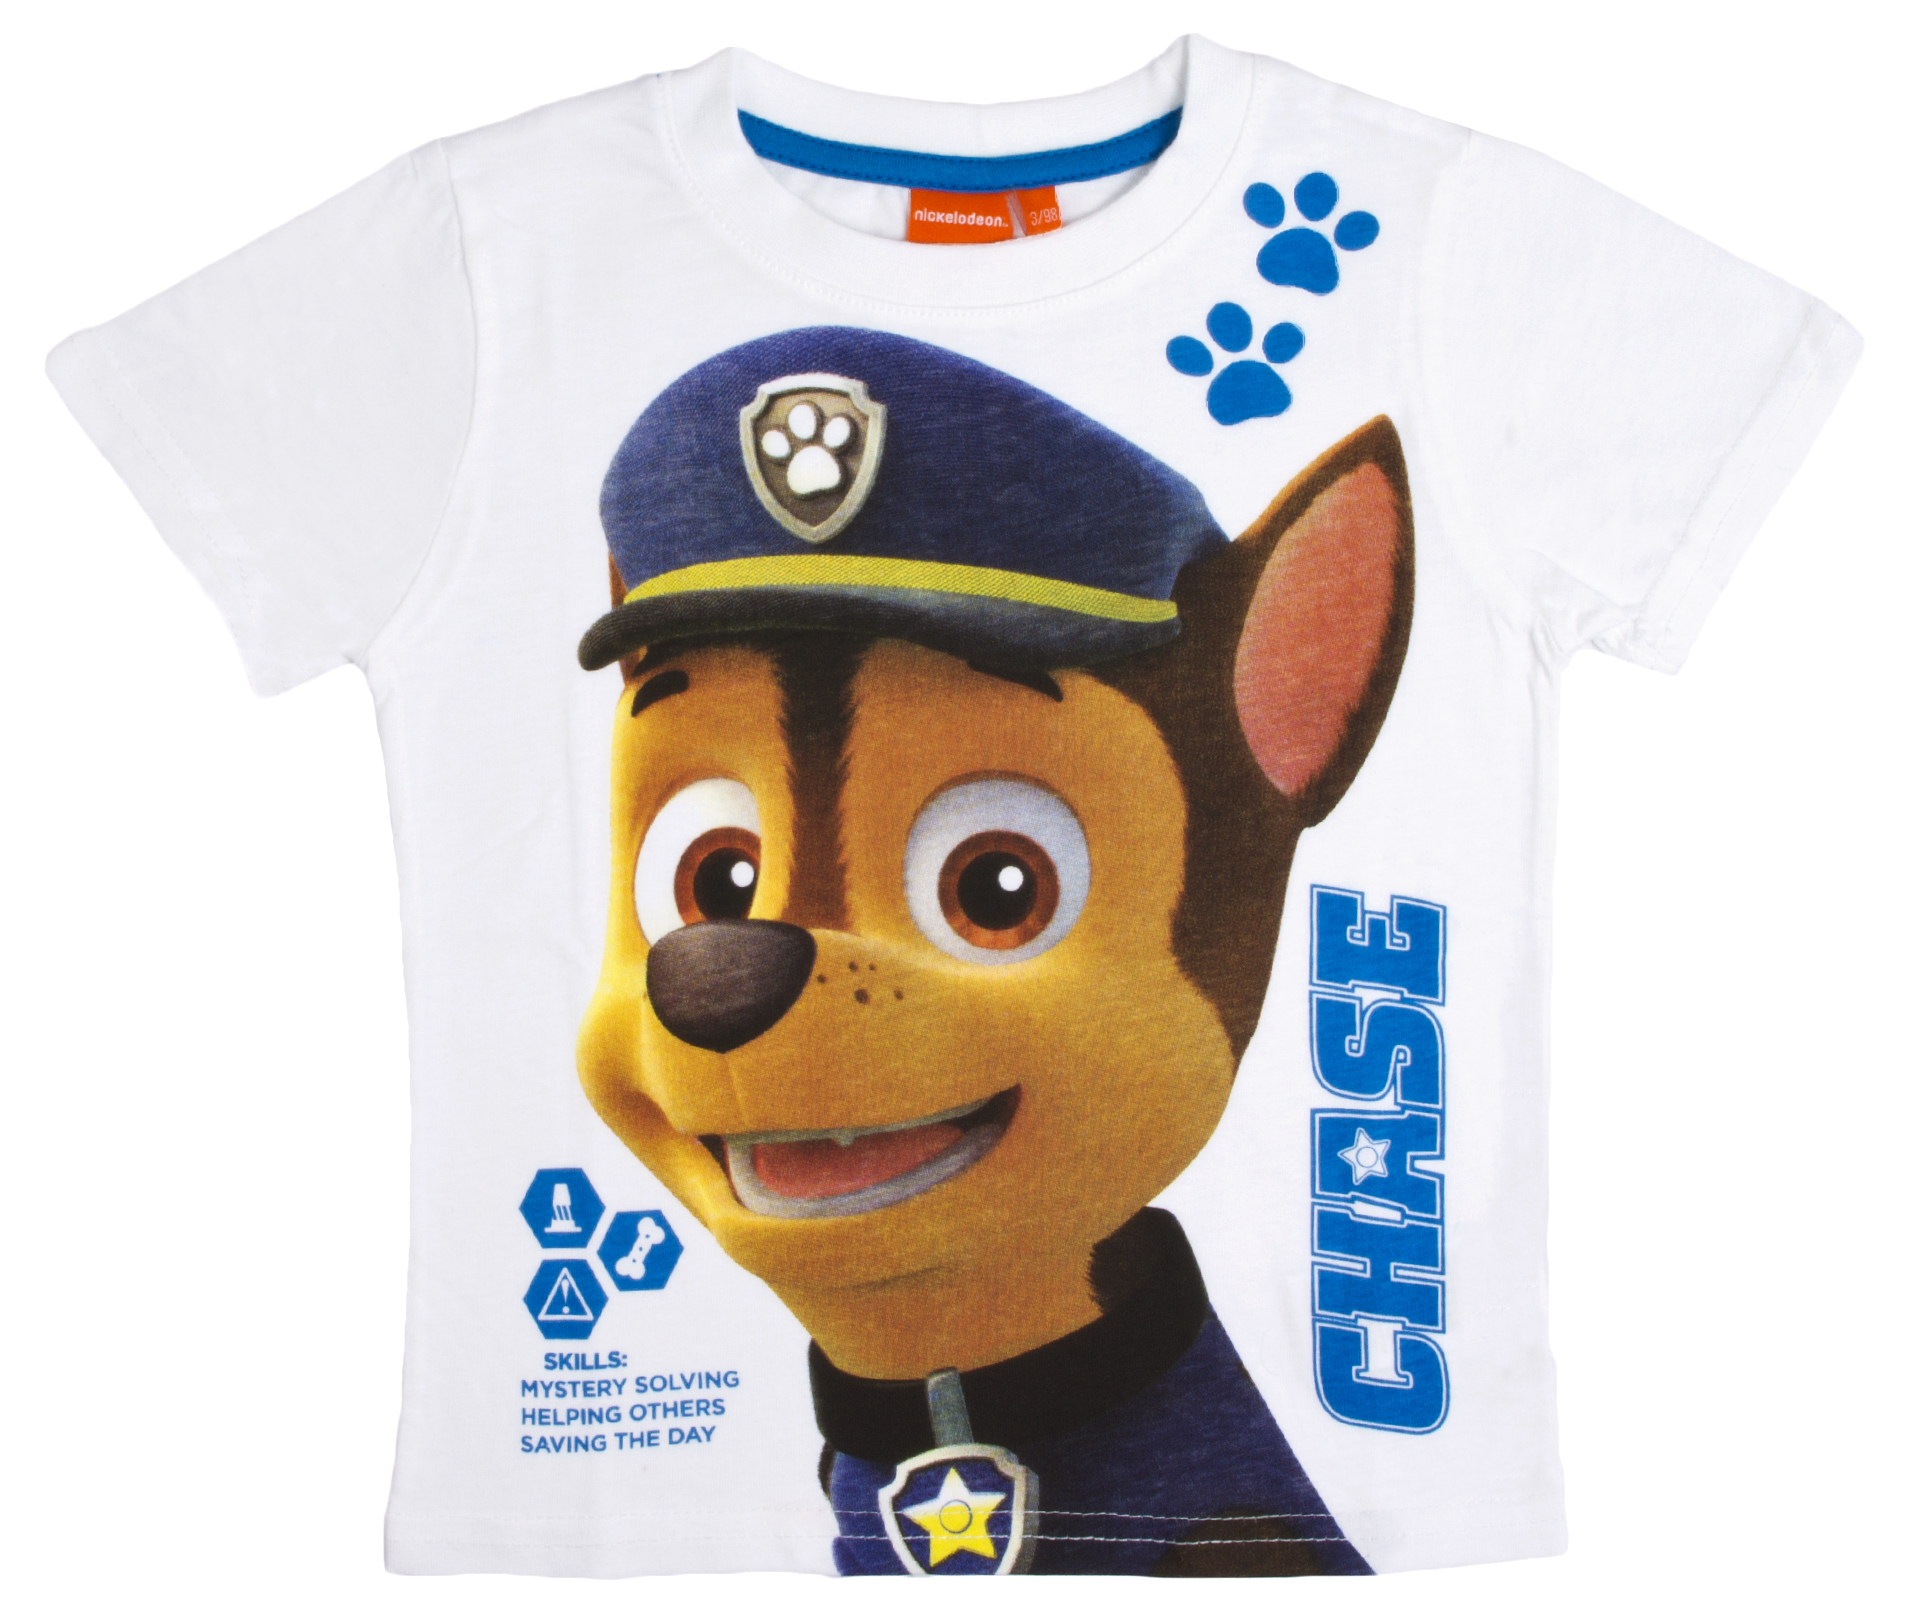 29a73cb1594d8 Boys Paw Patrol Short Sleeved T Shirt Chase Marshall Character Top ...